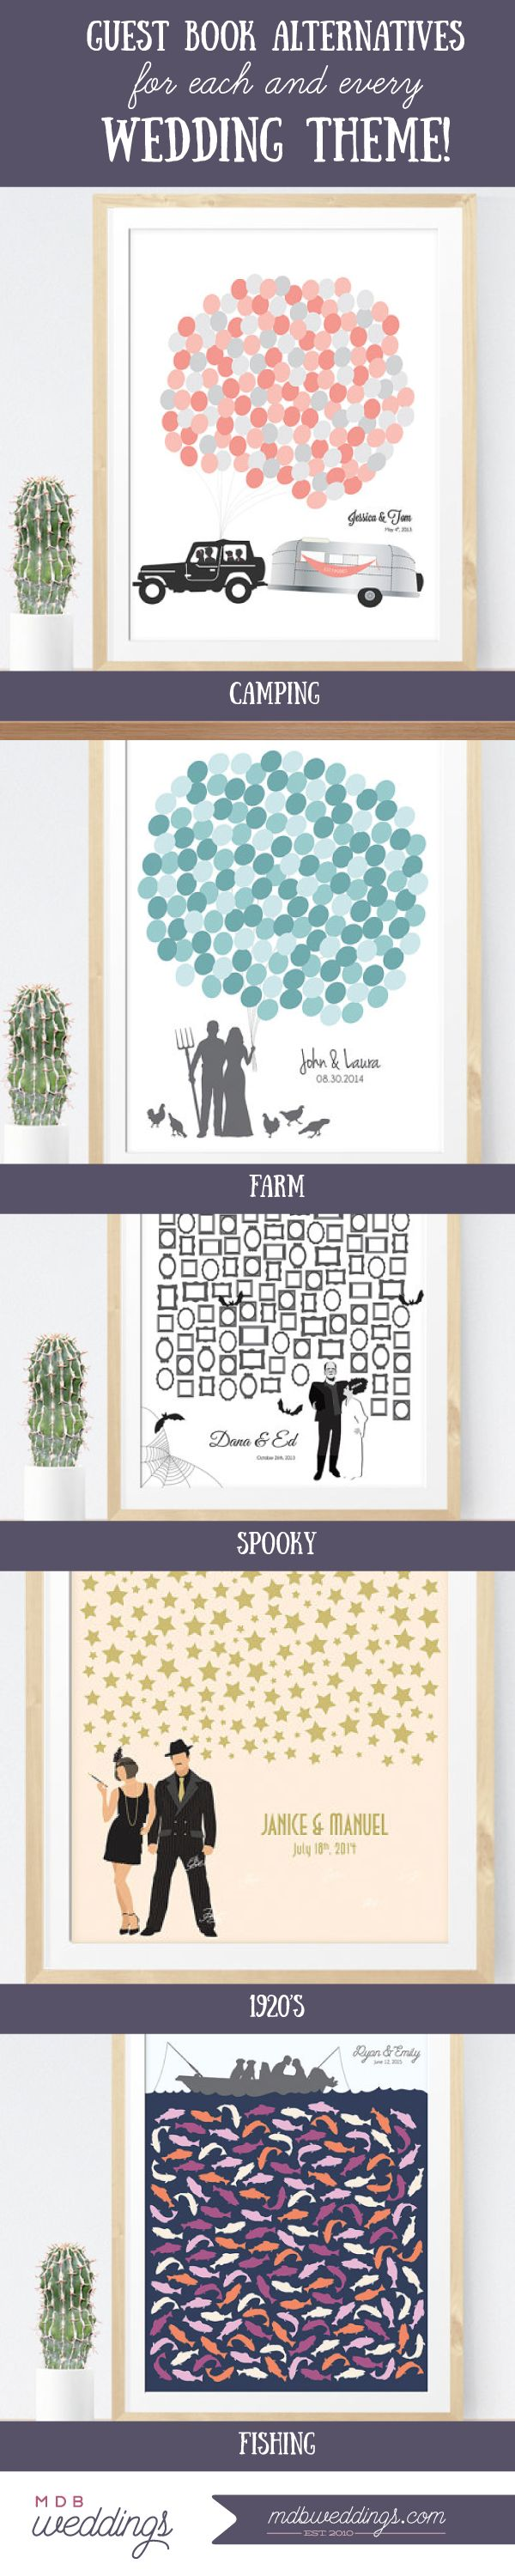 71 best Guest Book Inspiration images on Pinterest | Guest books ...